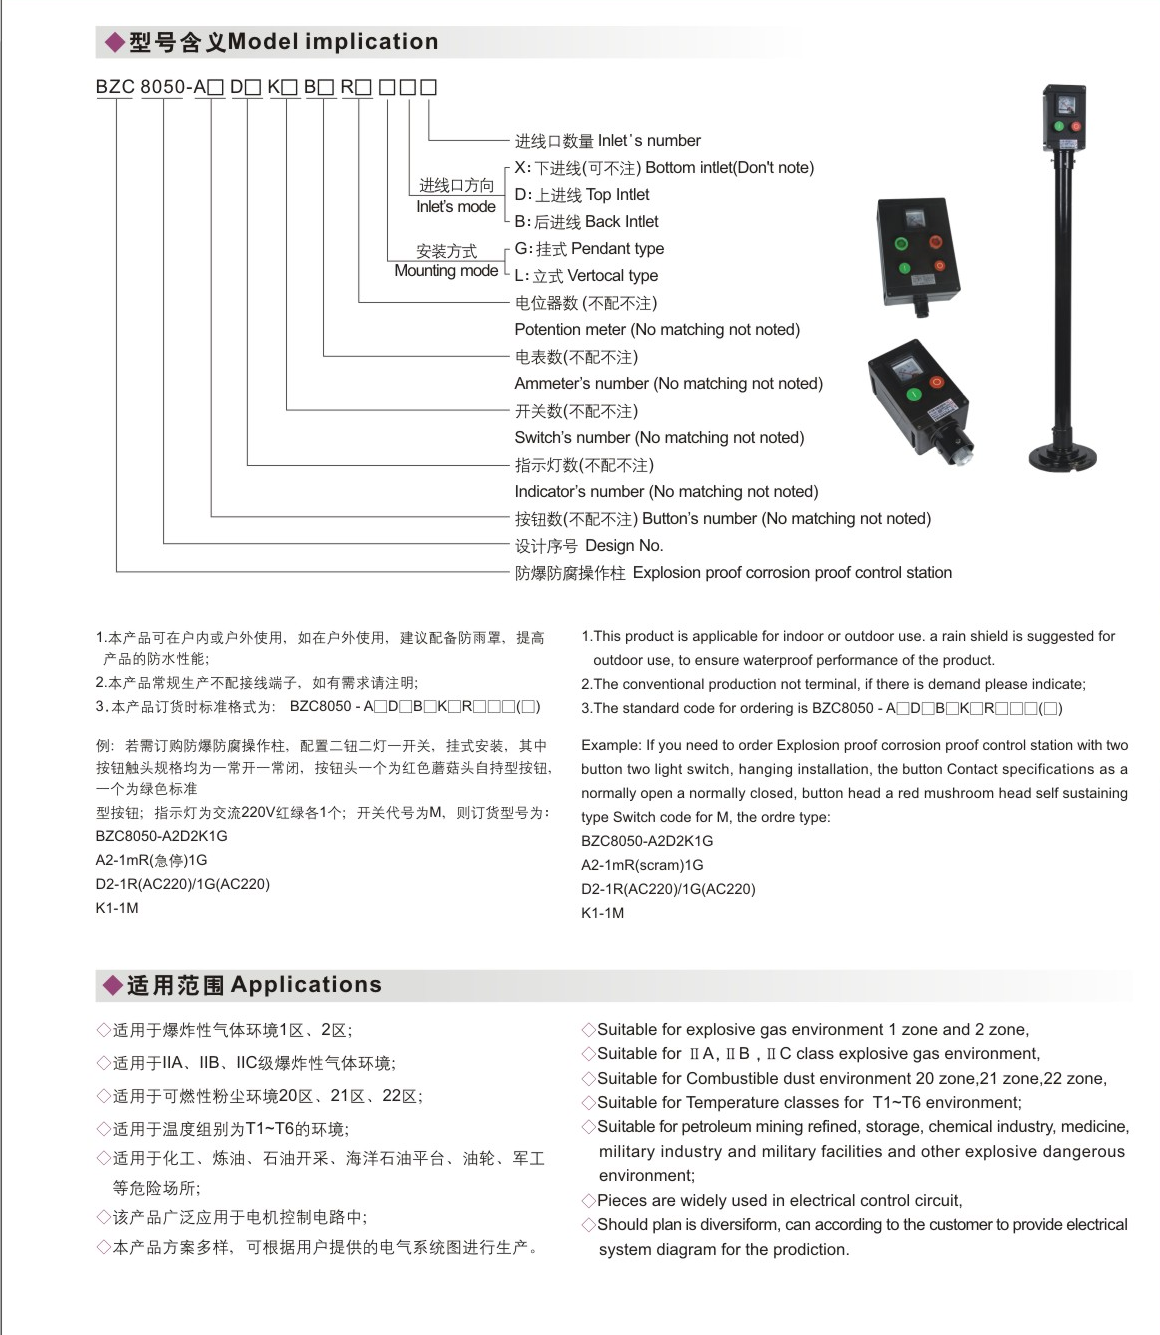 BZC8050 Explosion Proof Corrosion Proof Control Station